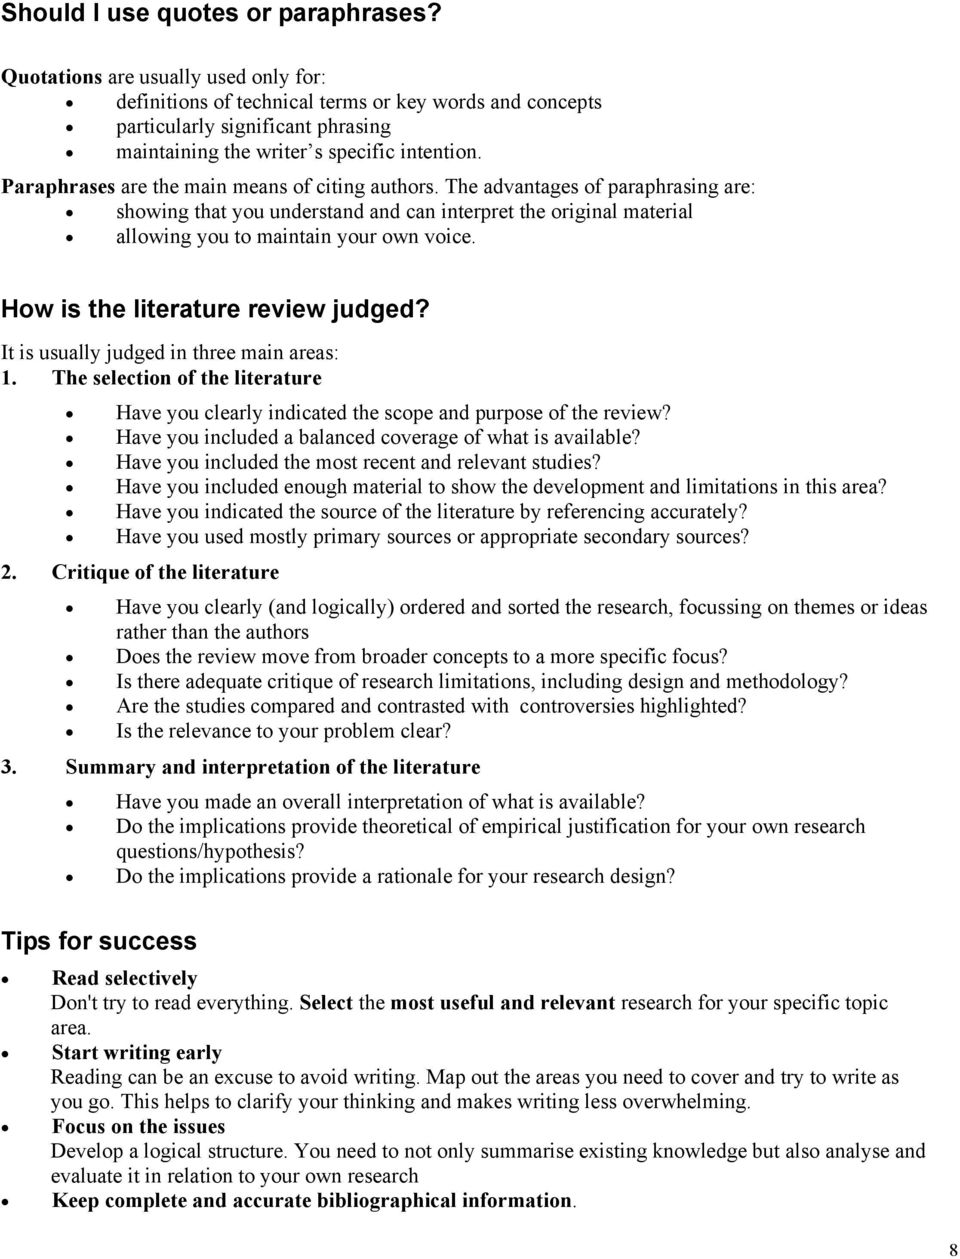 Writing The Literature Review / Using The Literature - PDF Free Download